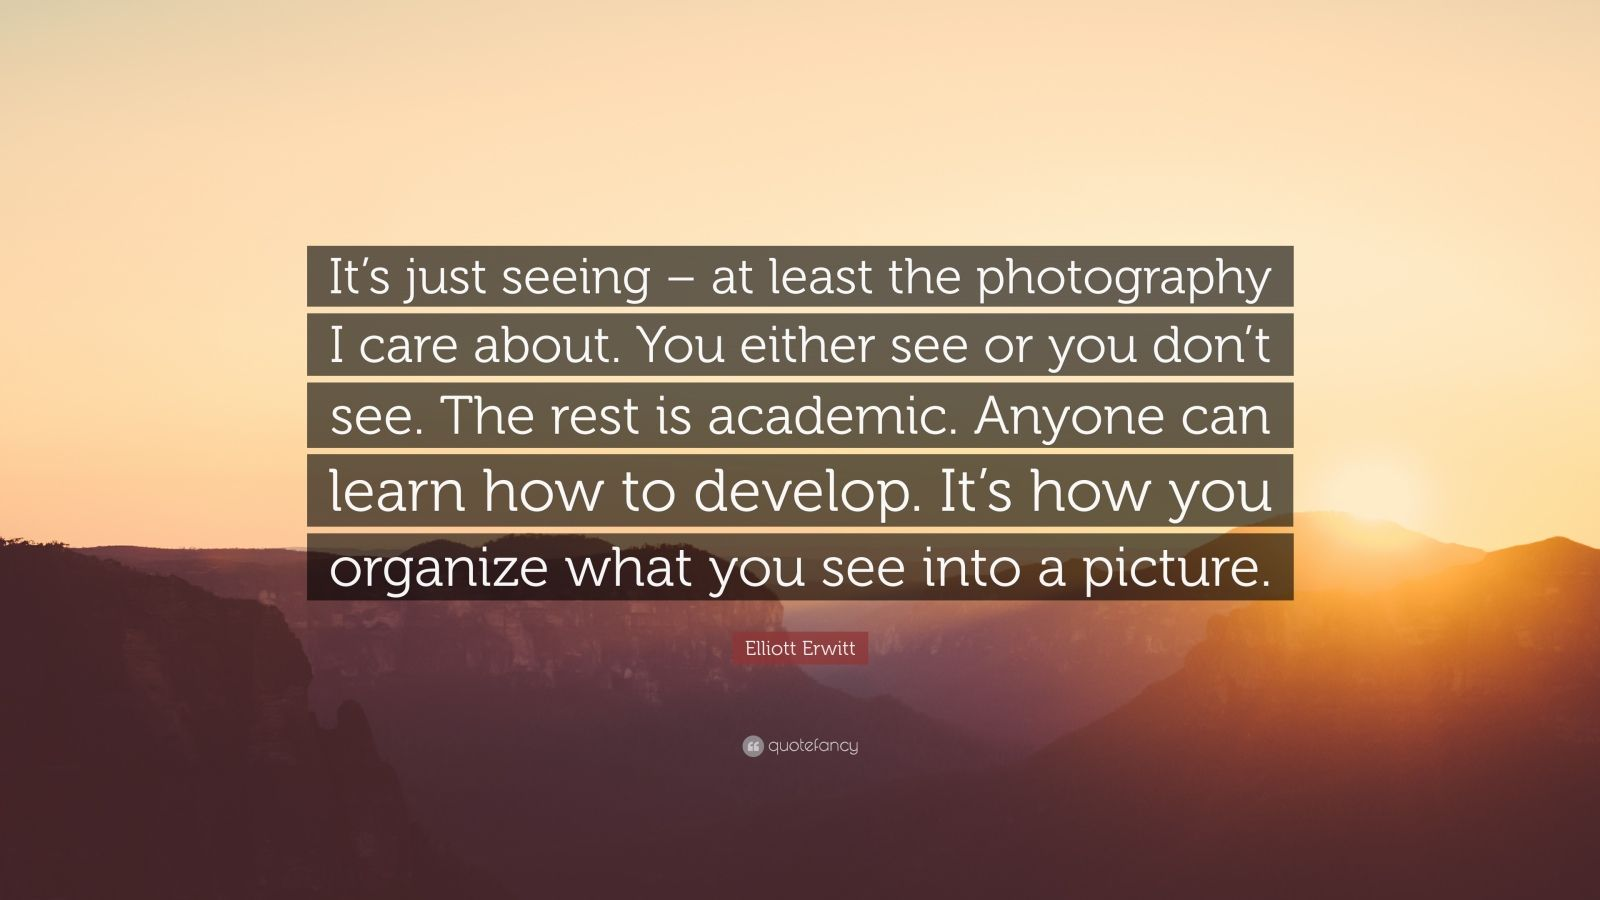 """Elliott Erwitt Quote: """"It's just seeing – at least the photography I care about. You either see or you don't see. The rest is academic. Anyone can learn how to develop. It's how you organize what you see into a picture."""""""